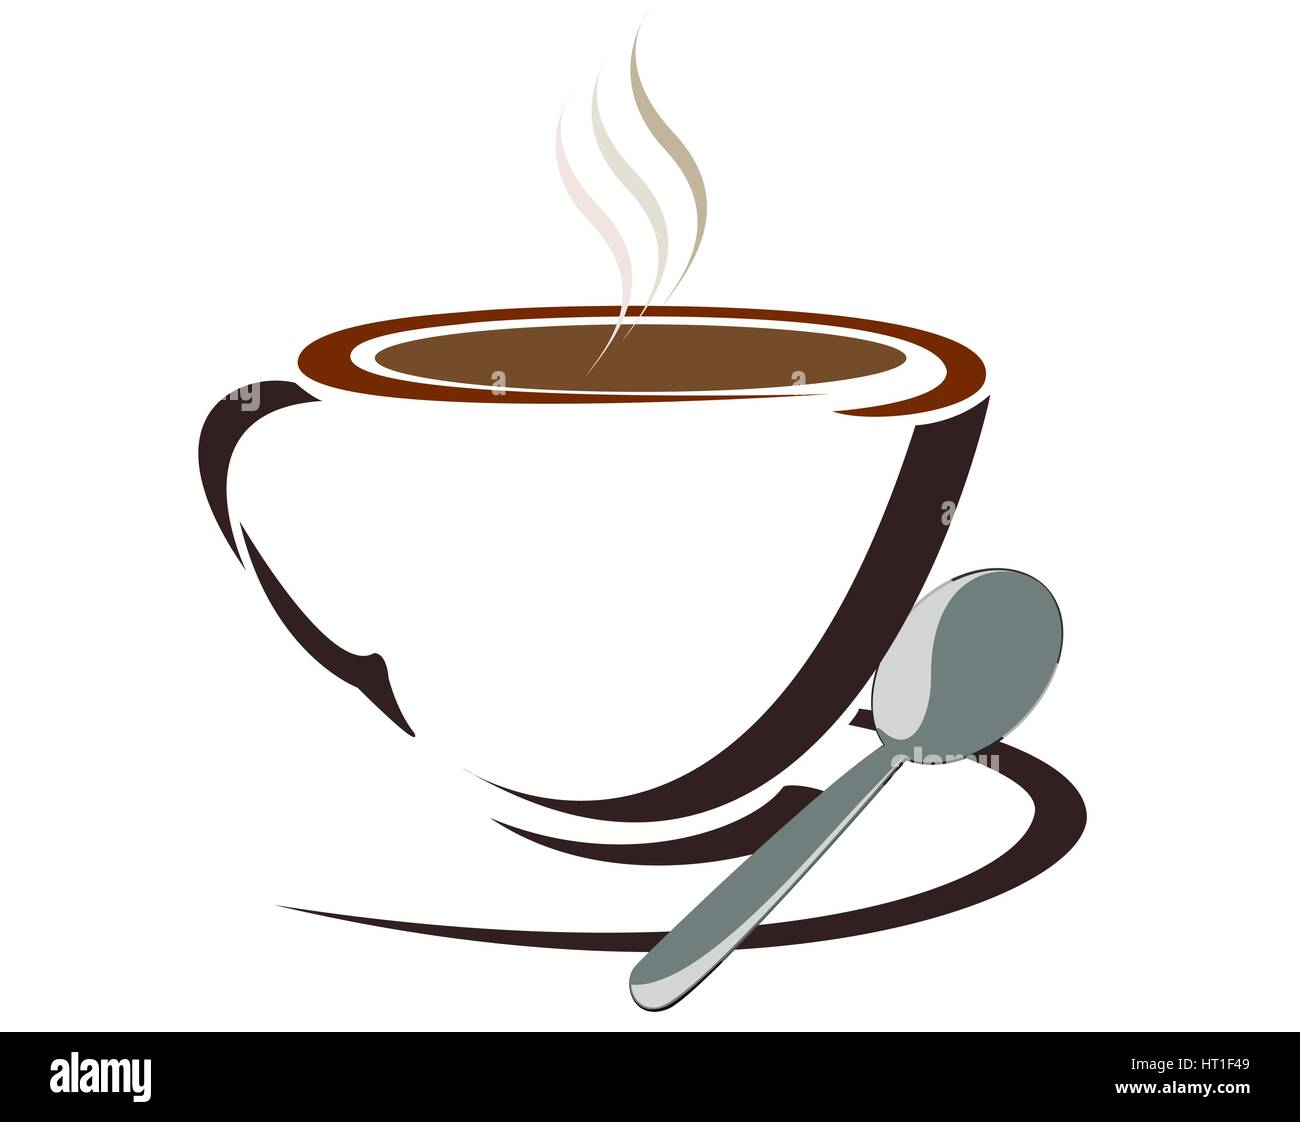 Ground Coffee Stock Vector Images - Alamy